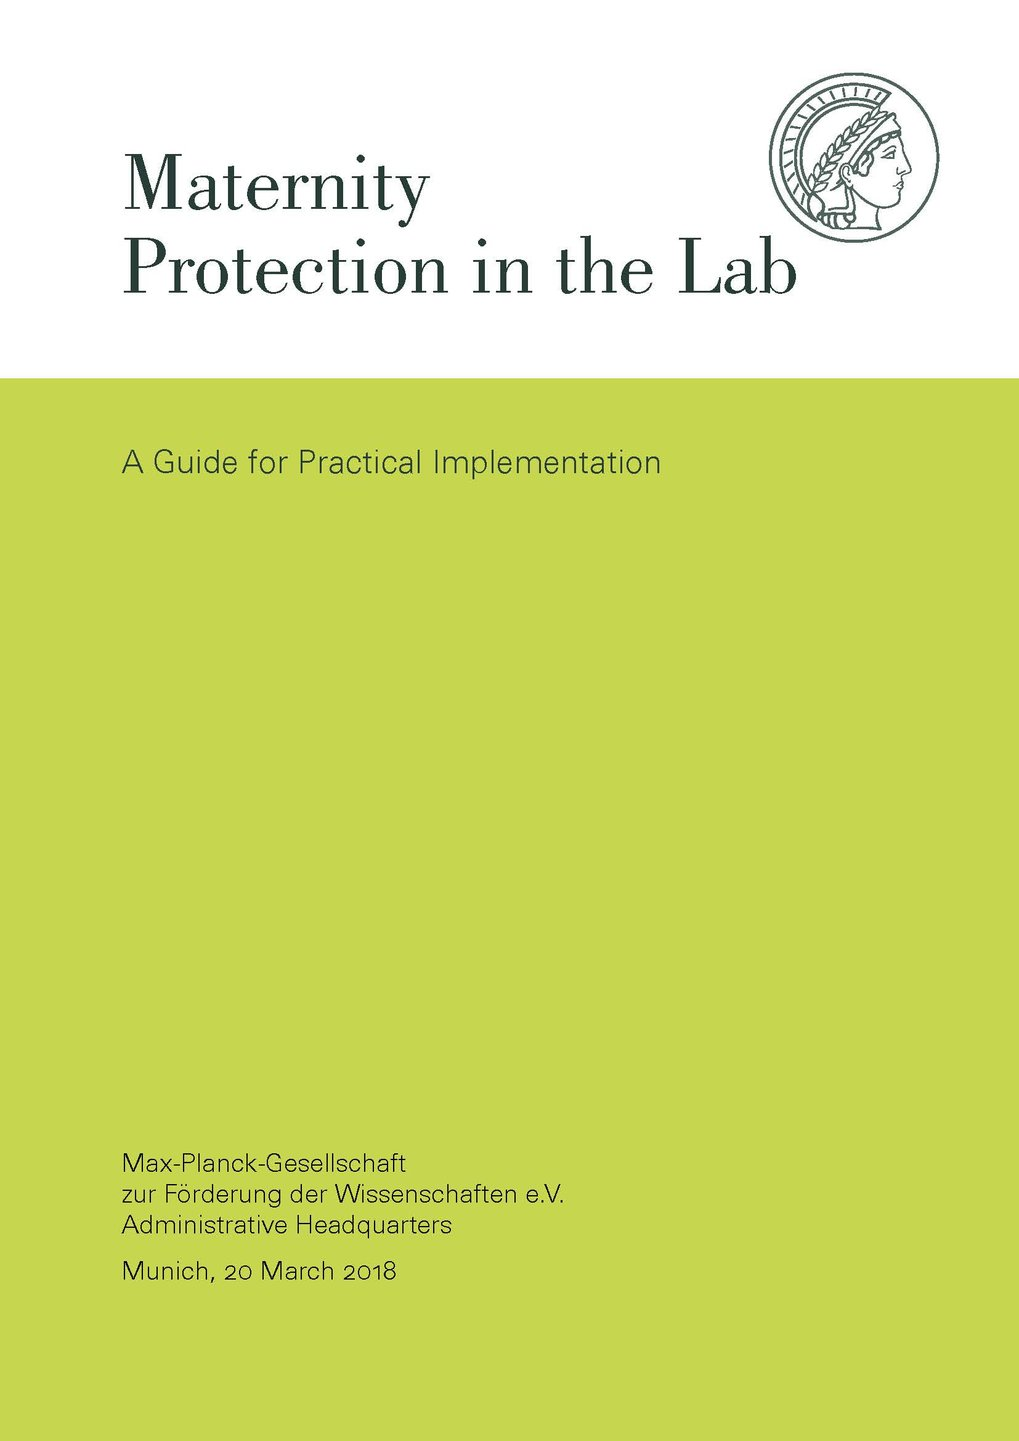 Maternity Protection in the Lab